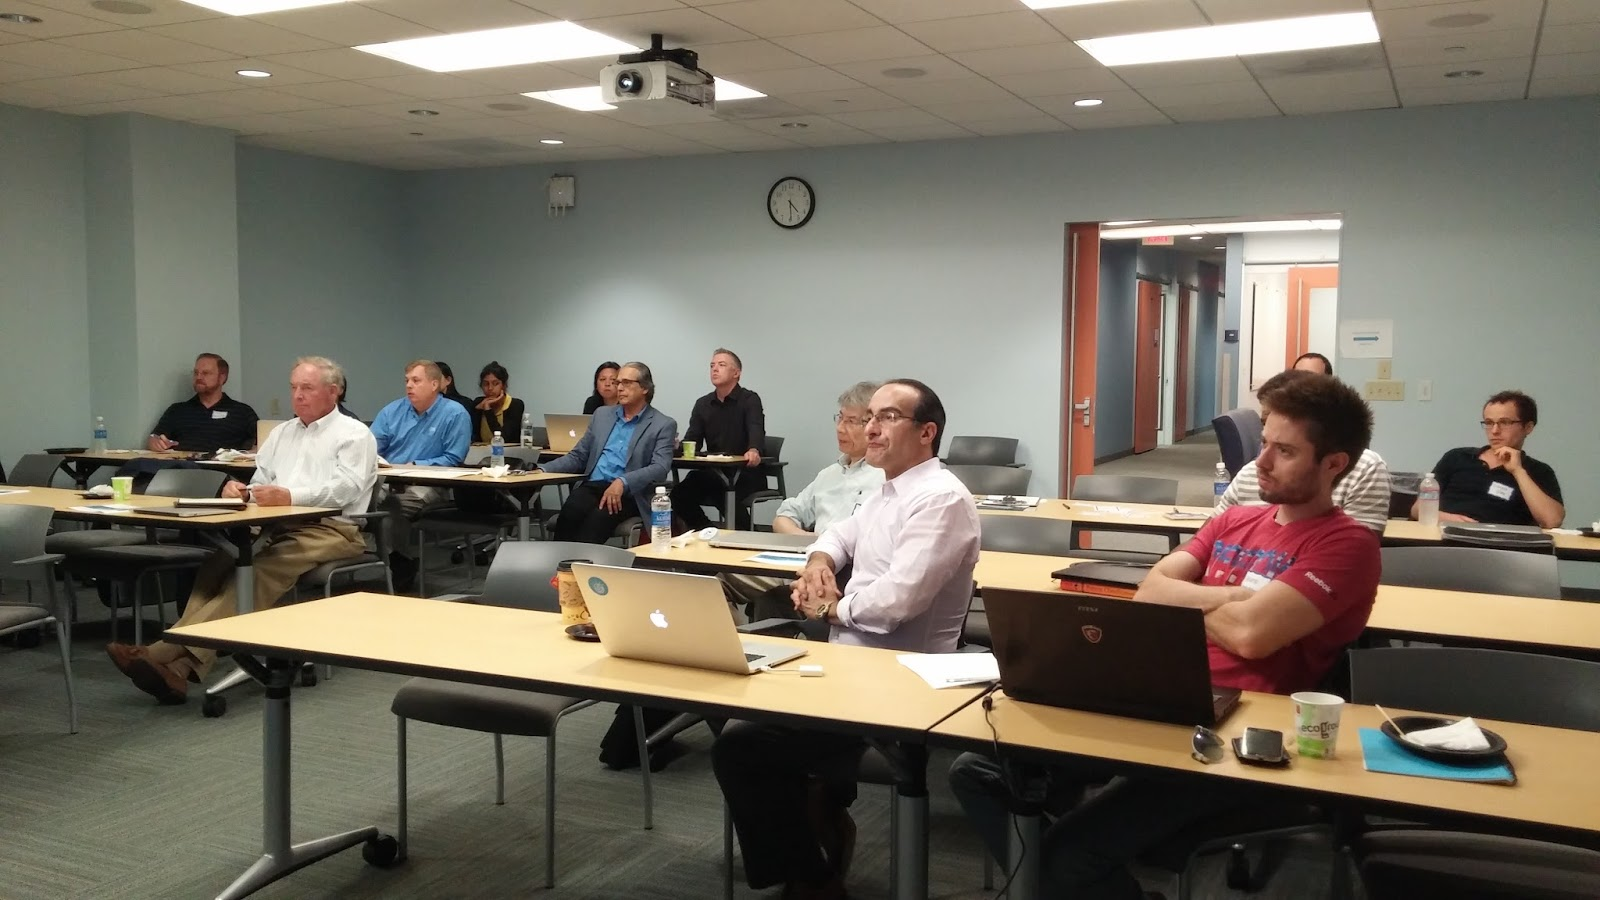 medium resolution of representatives from ibm provided a free student and faculty workshop with the von liebig entrepreneurism center at the jacobs school of engineering on